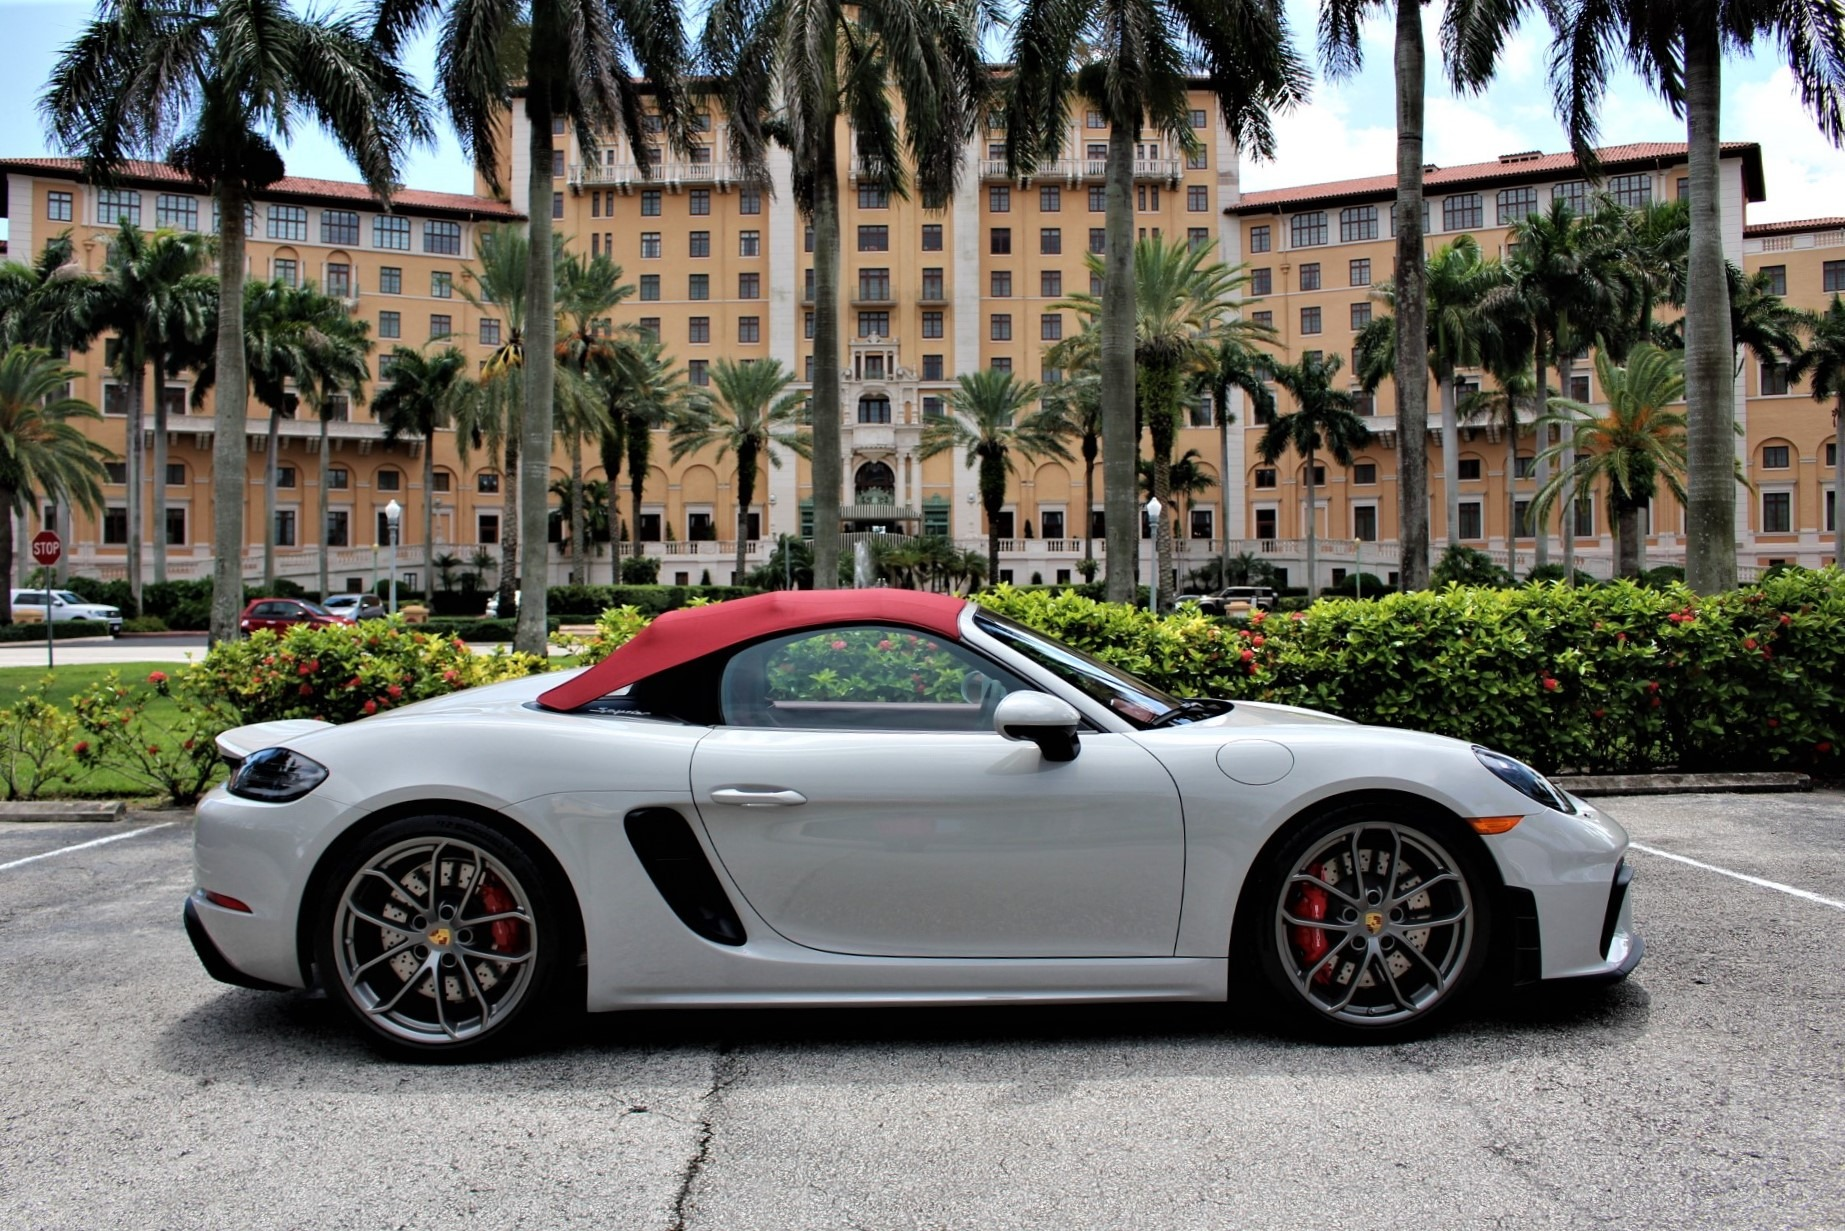 Used 2021 Porsche 718 Boxster Spyder for sale Sold at The Gables Sports Cars in Miami FL 33146 2